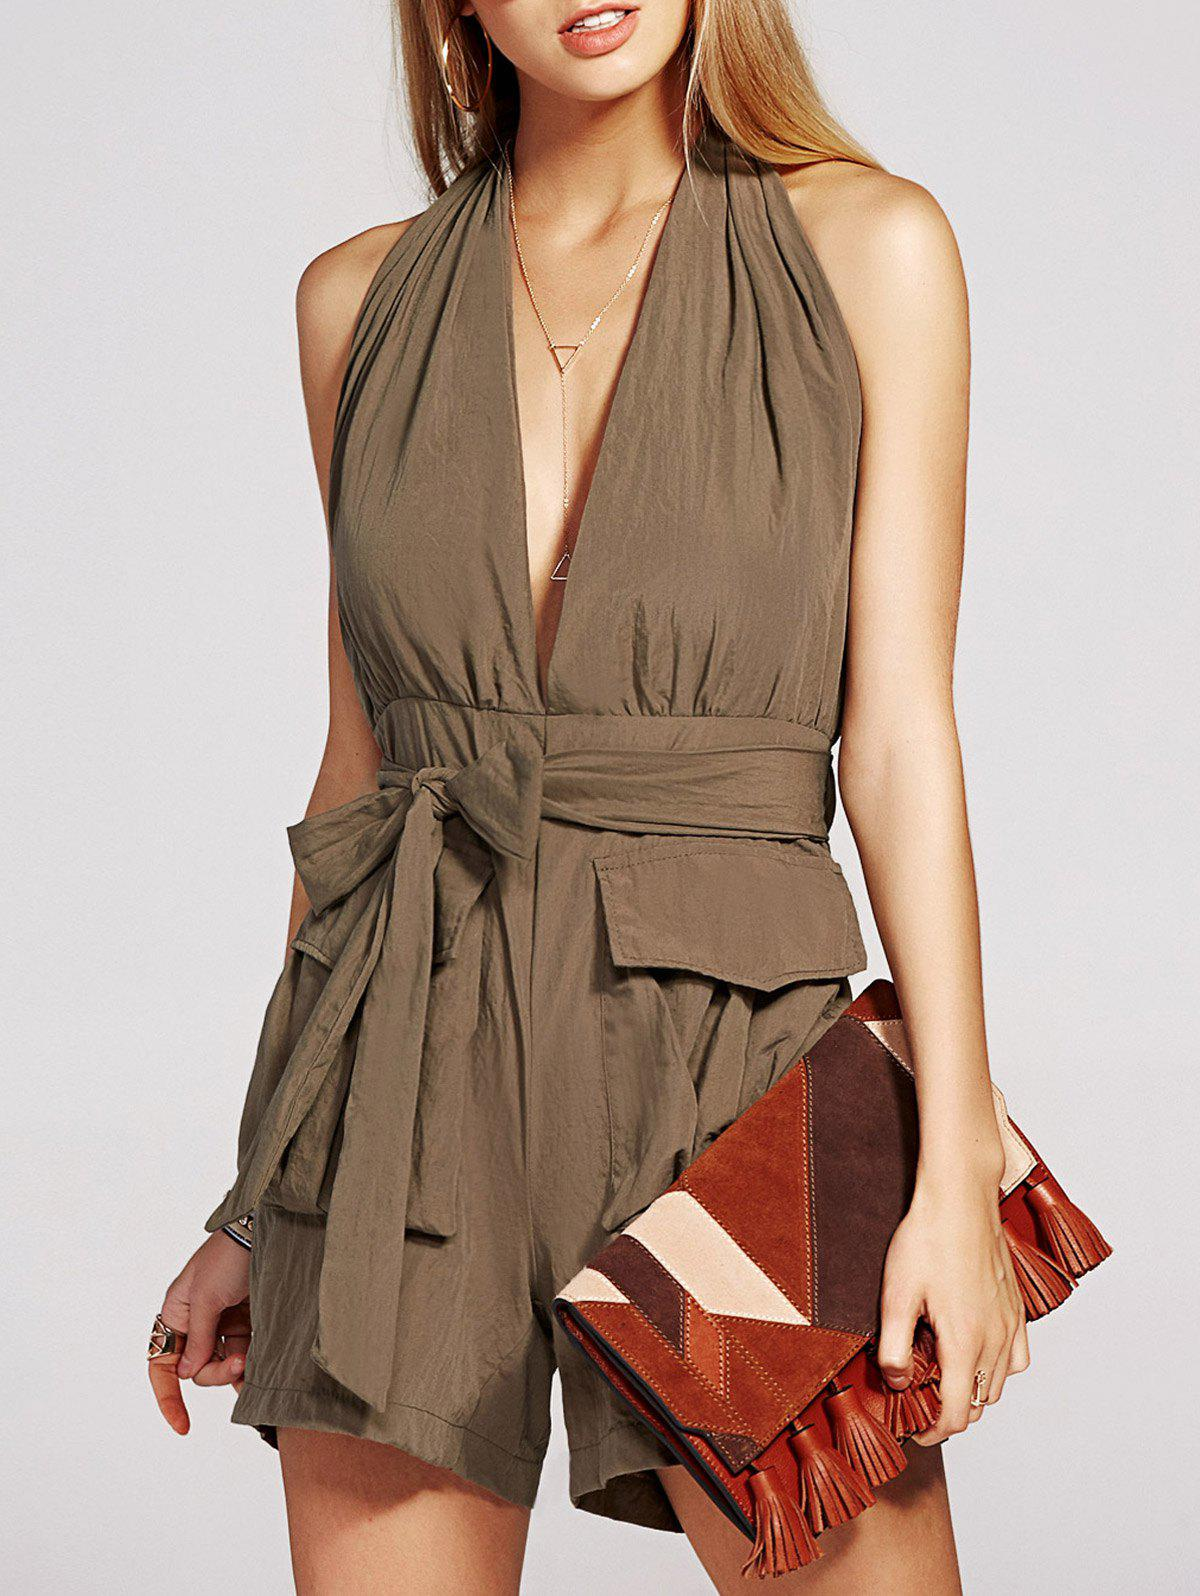 Charming Sleeveless Backless Solid Color Pocket Design Women's Romper - ARMY GREEN XL